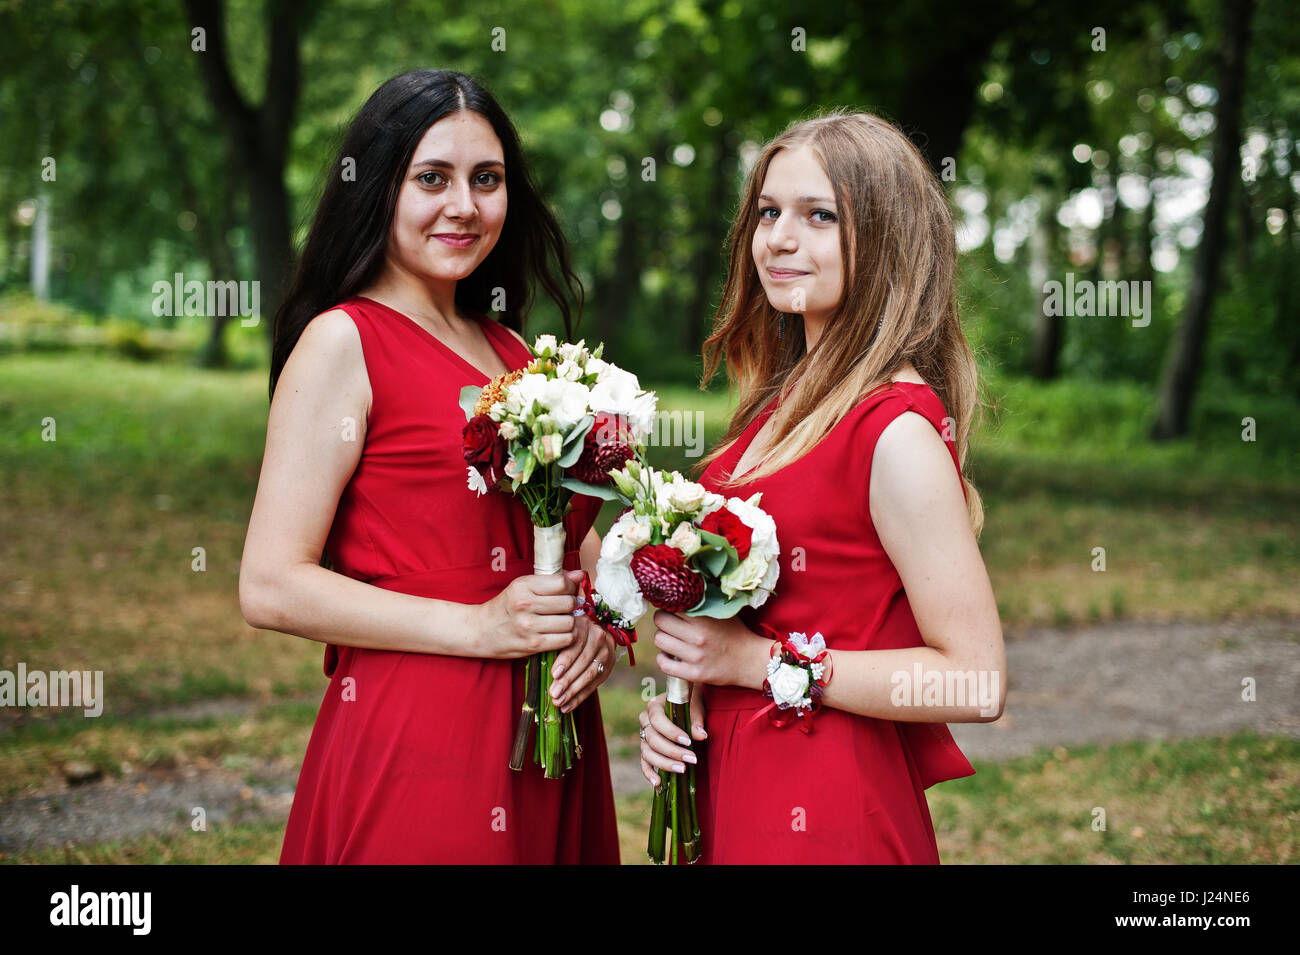 Two Girls Bridesmaids At Red Dresses With Wedding Bouquets Stock Photo Alamy,Jcpenney Wedding Dresses Bridal Gowns